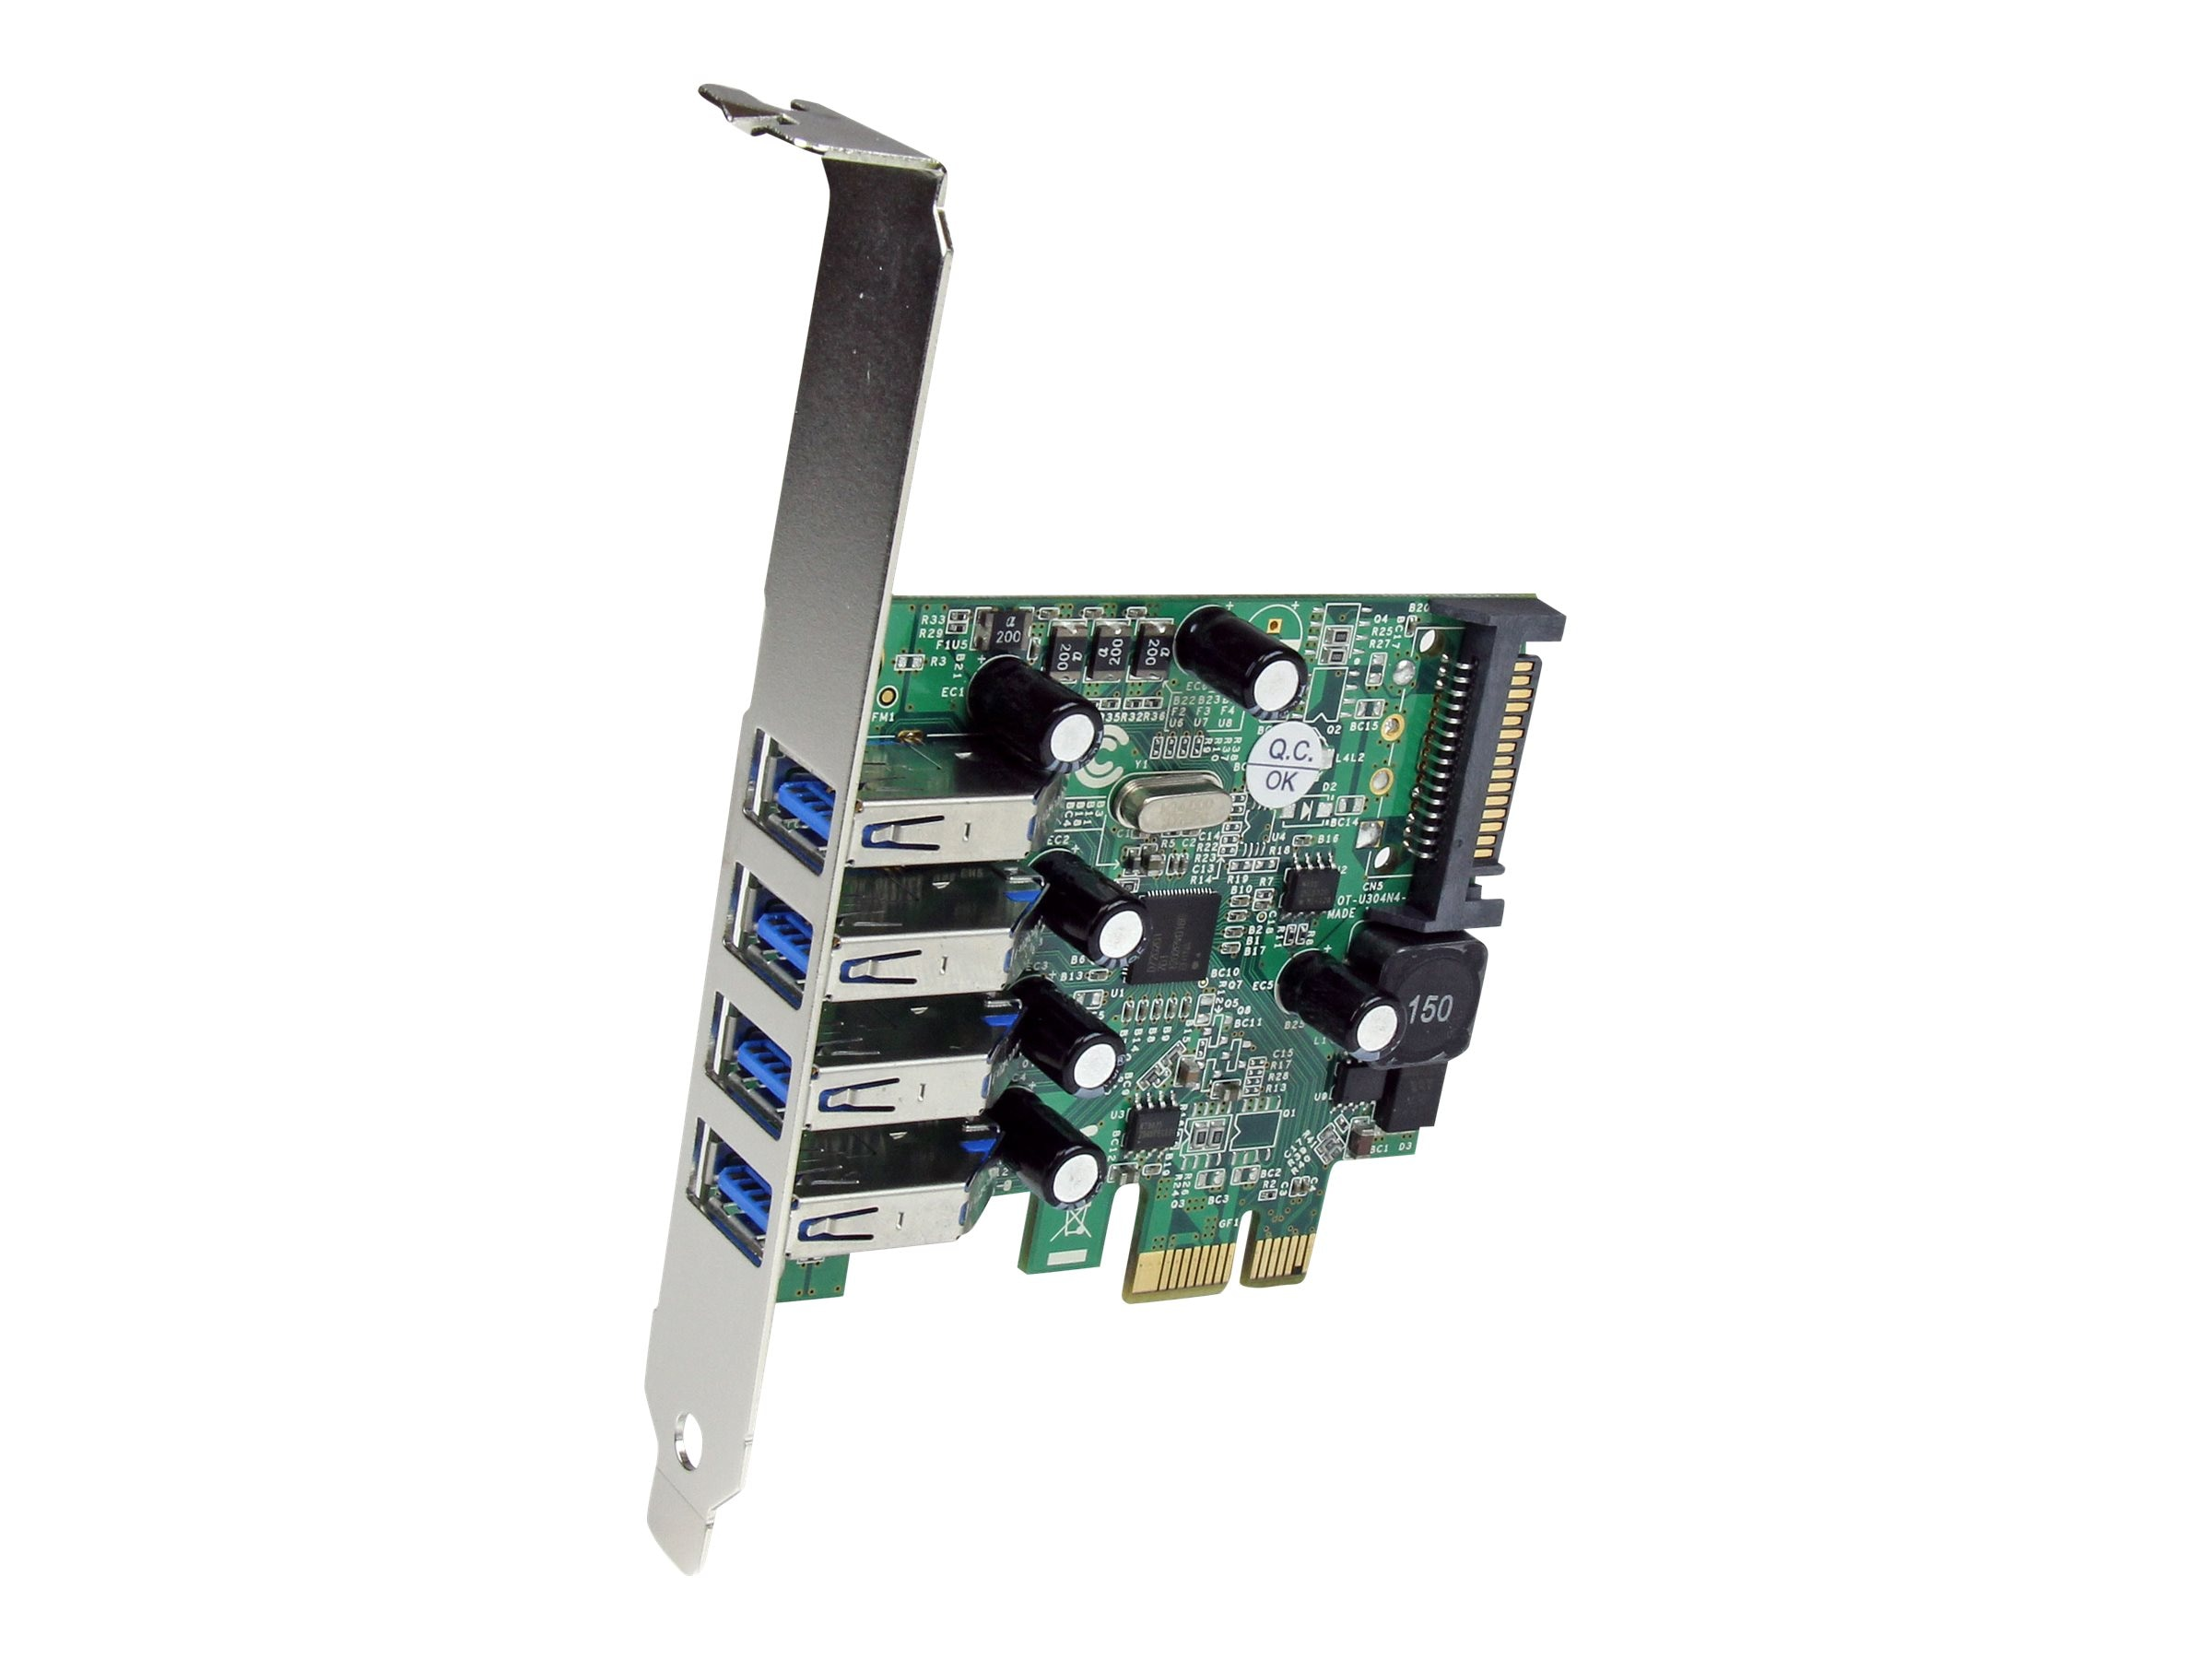 StarTech.com 4 Port PCI Express SuperSpeed USB 3.0 Card with UASP - SATA Power, PEXUSB3S4V